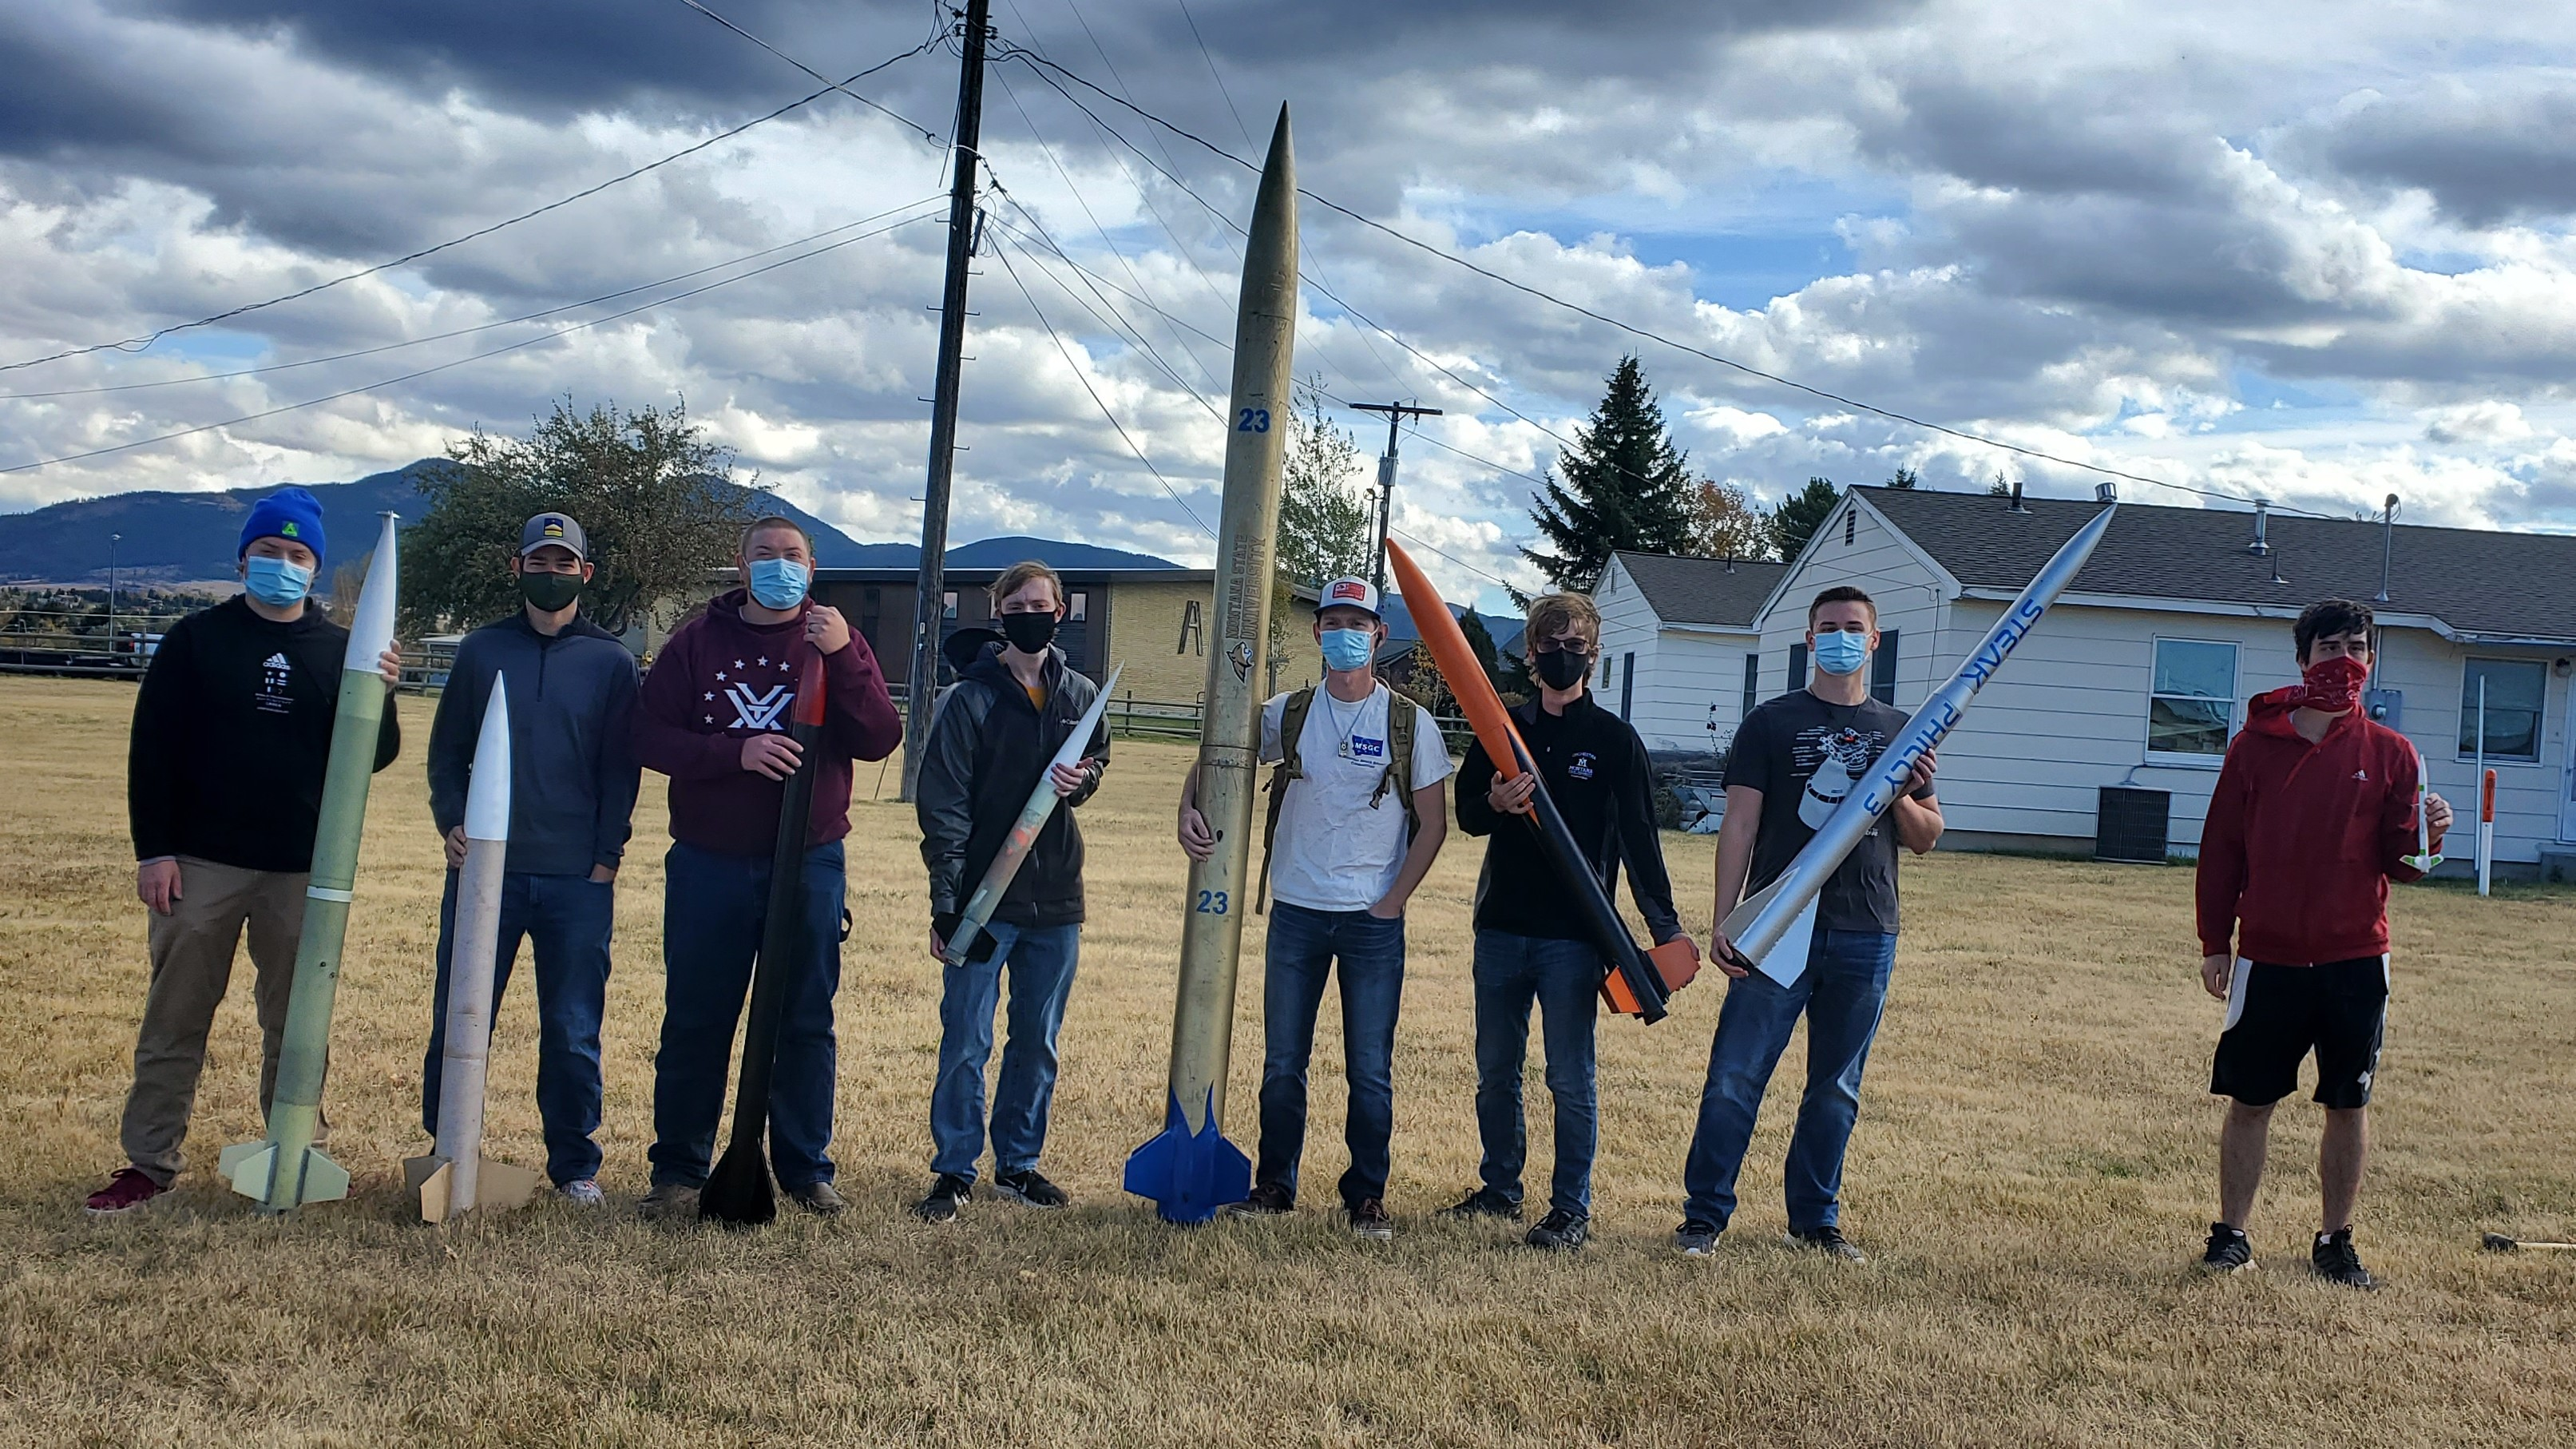 Rocketry Club with their rockets